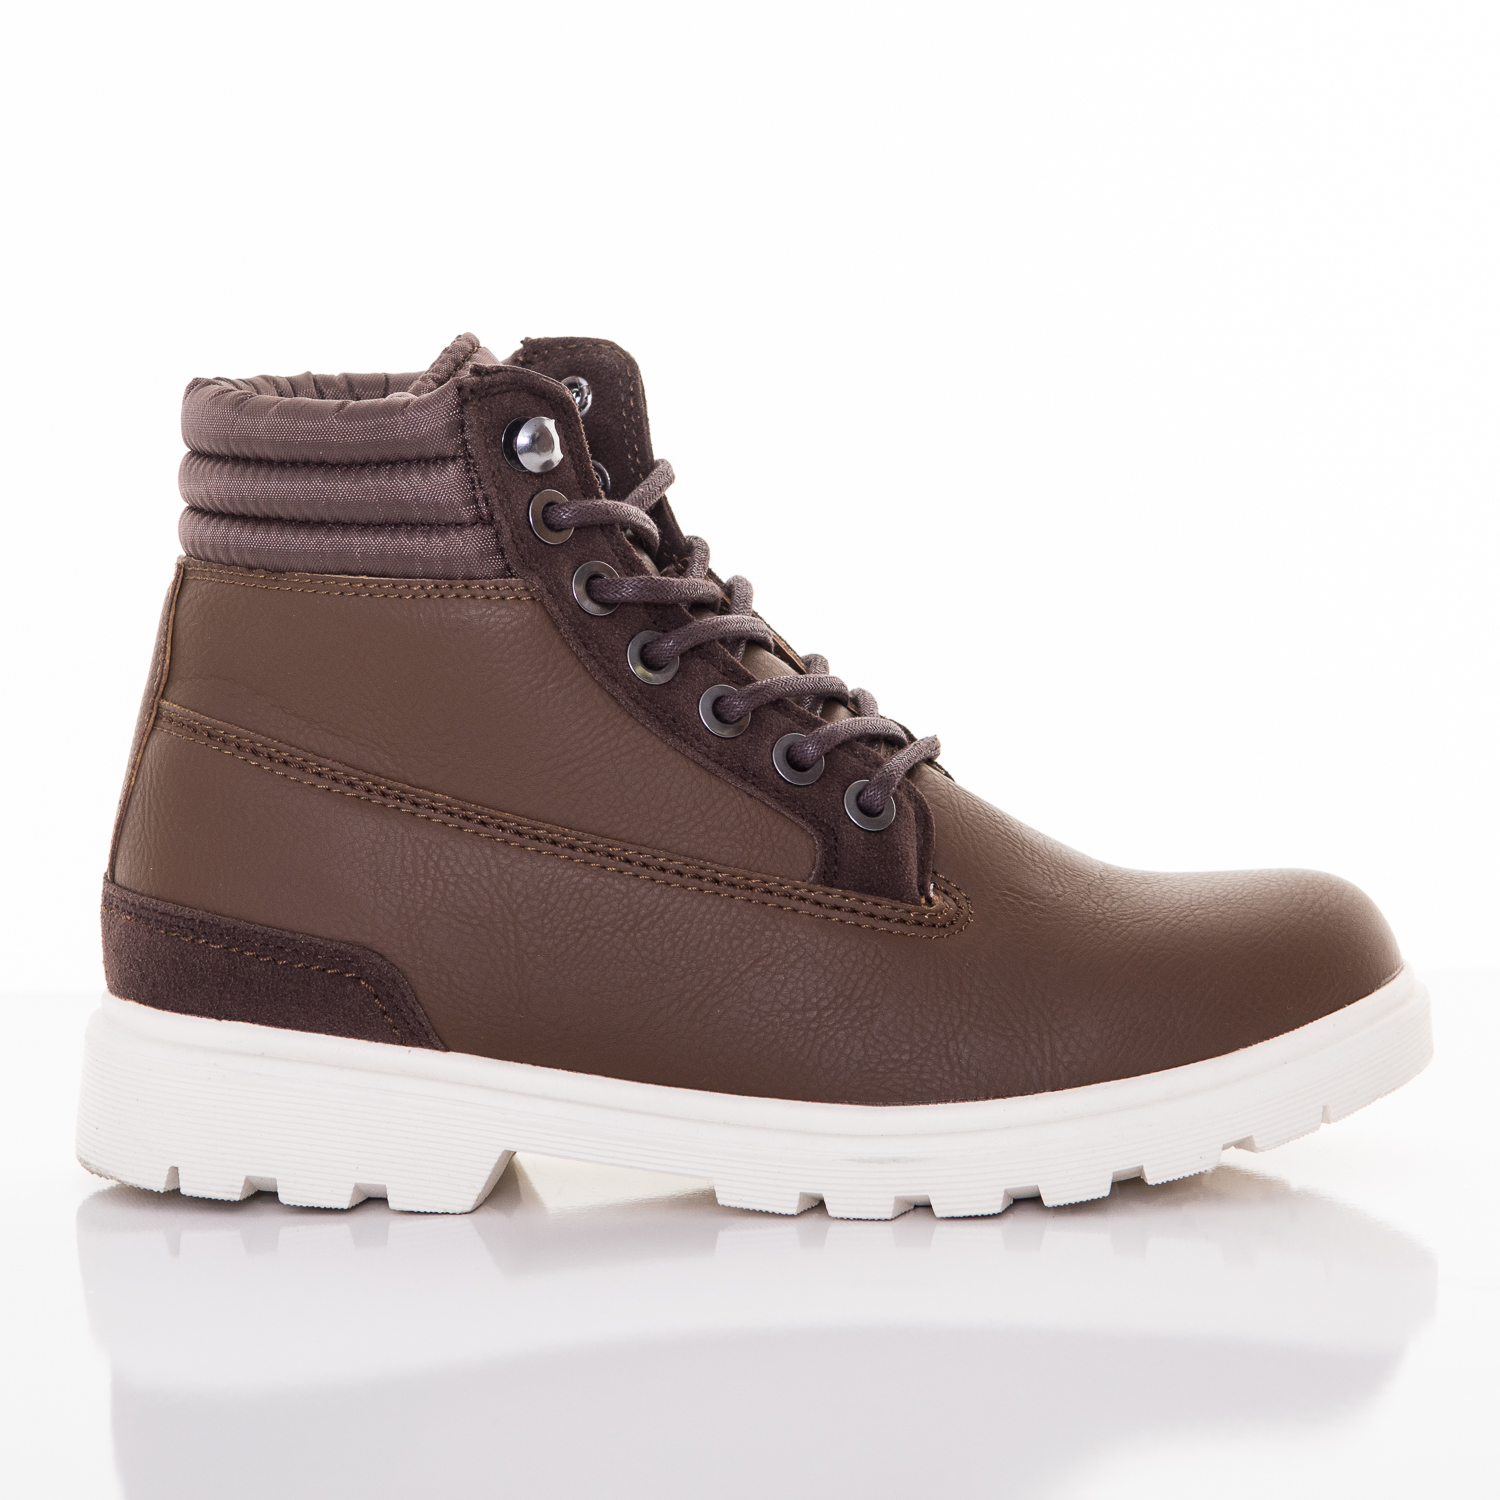 Zimná obuv Urban Classics Winter Boots Brown Darkbrown 46